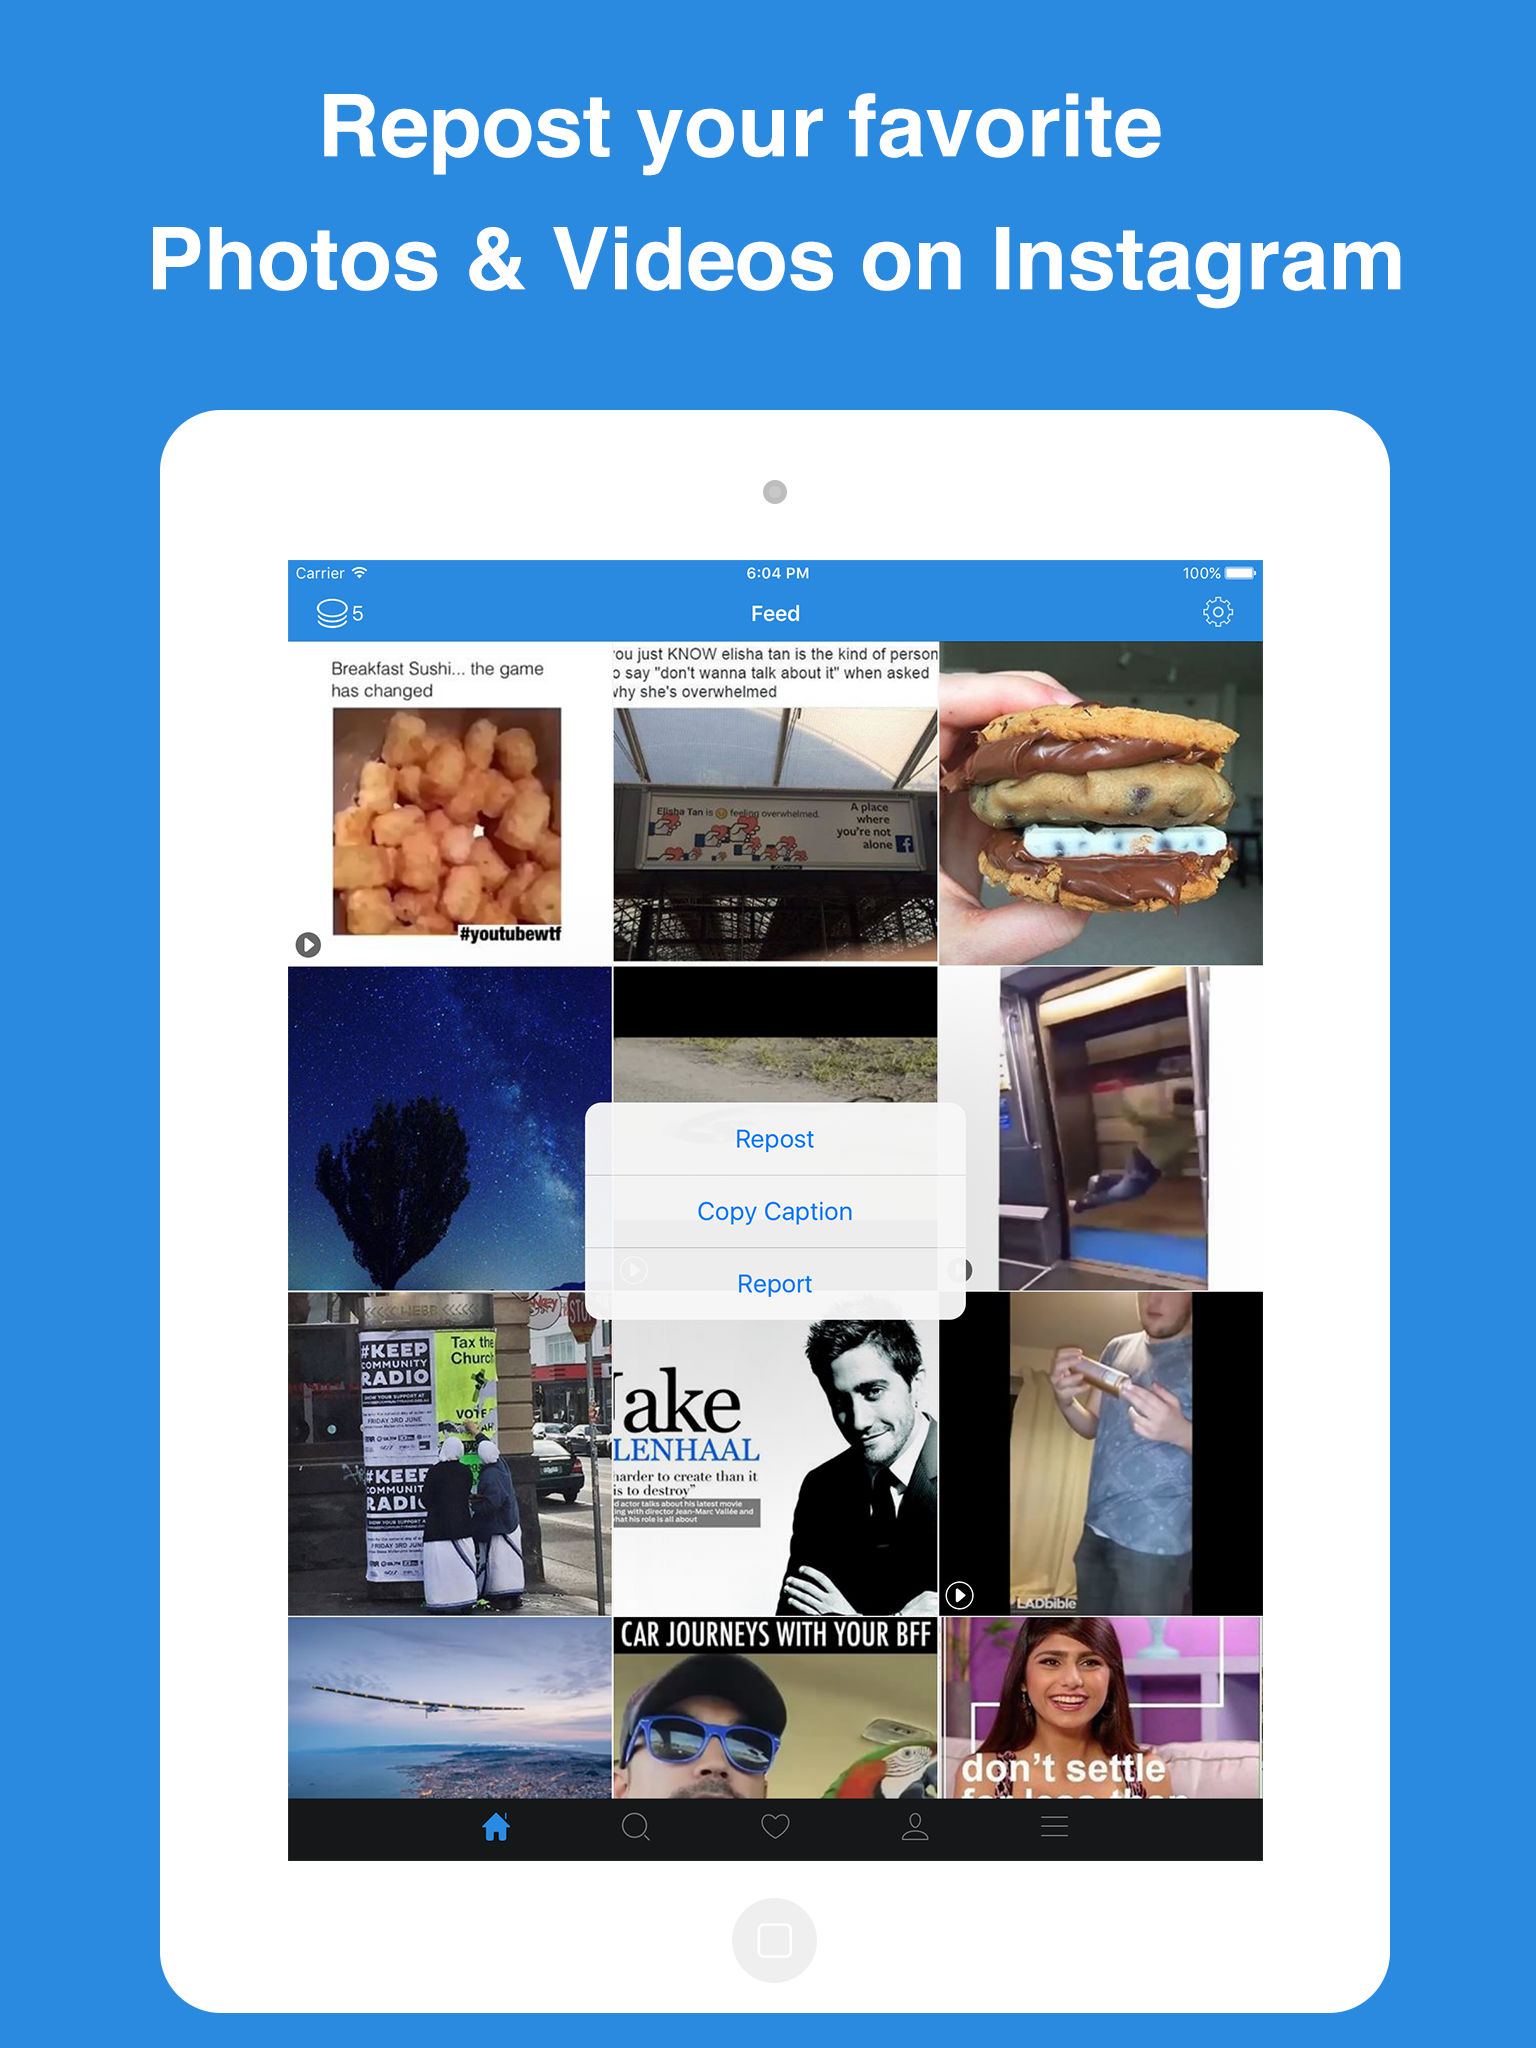 Delete Or Unlike Multiple Photos & Videos At Once Support Multiple Accounts  Track Users That Don How To Create The Quintessential Instagram Feed